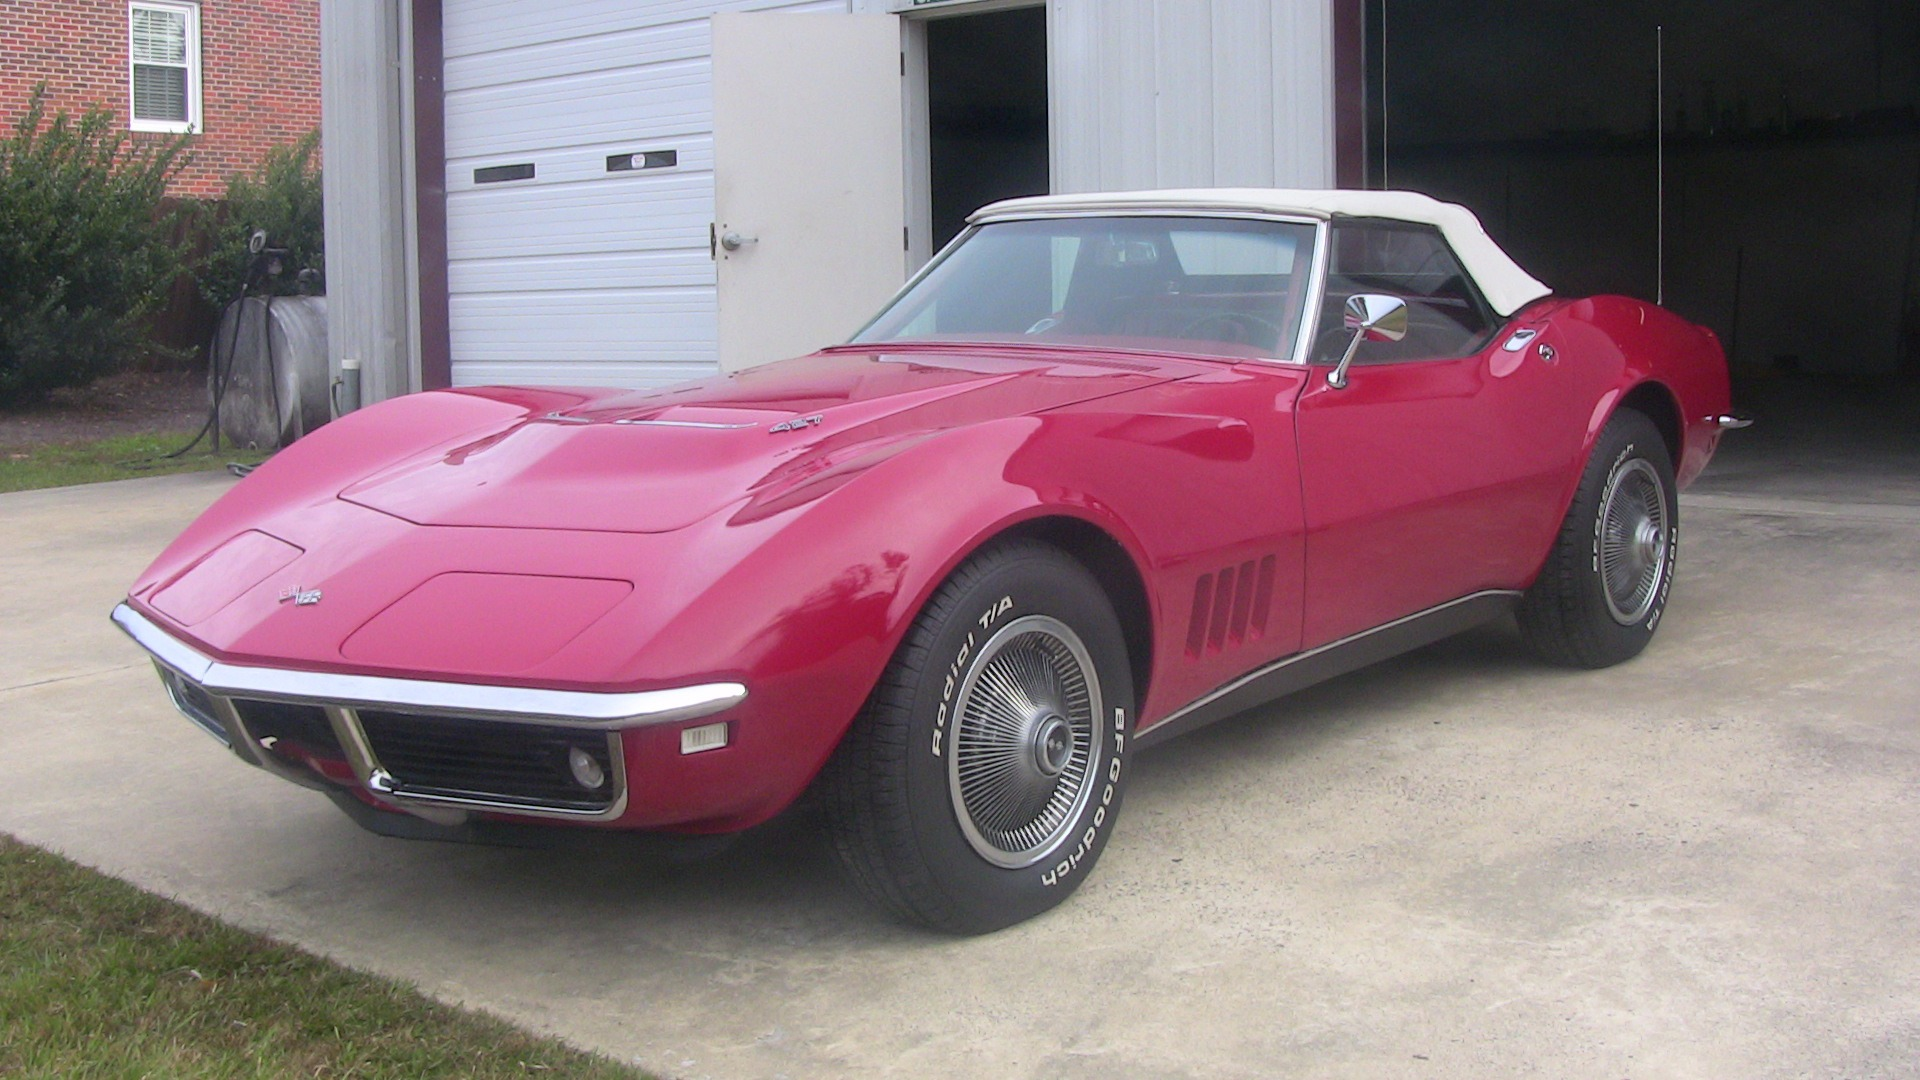 Used 1968 Chevrolet Corvette , For Sale $43000, Call Us: (704) 996-3735